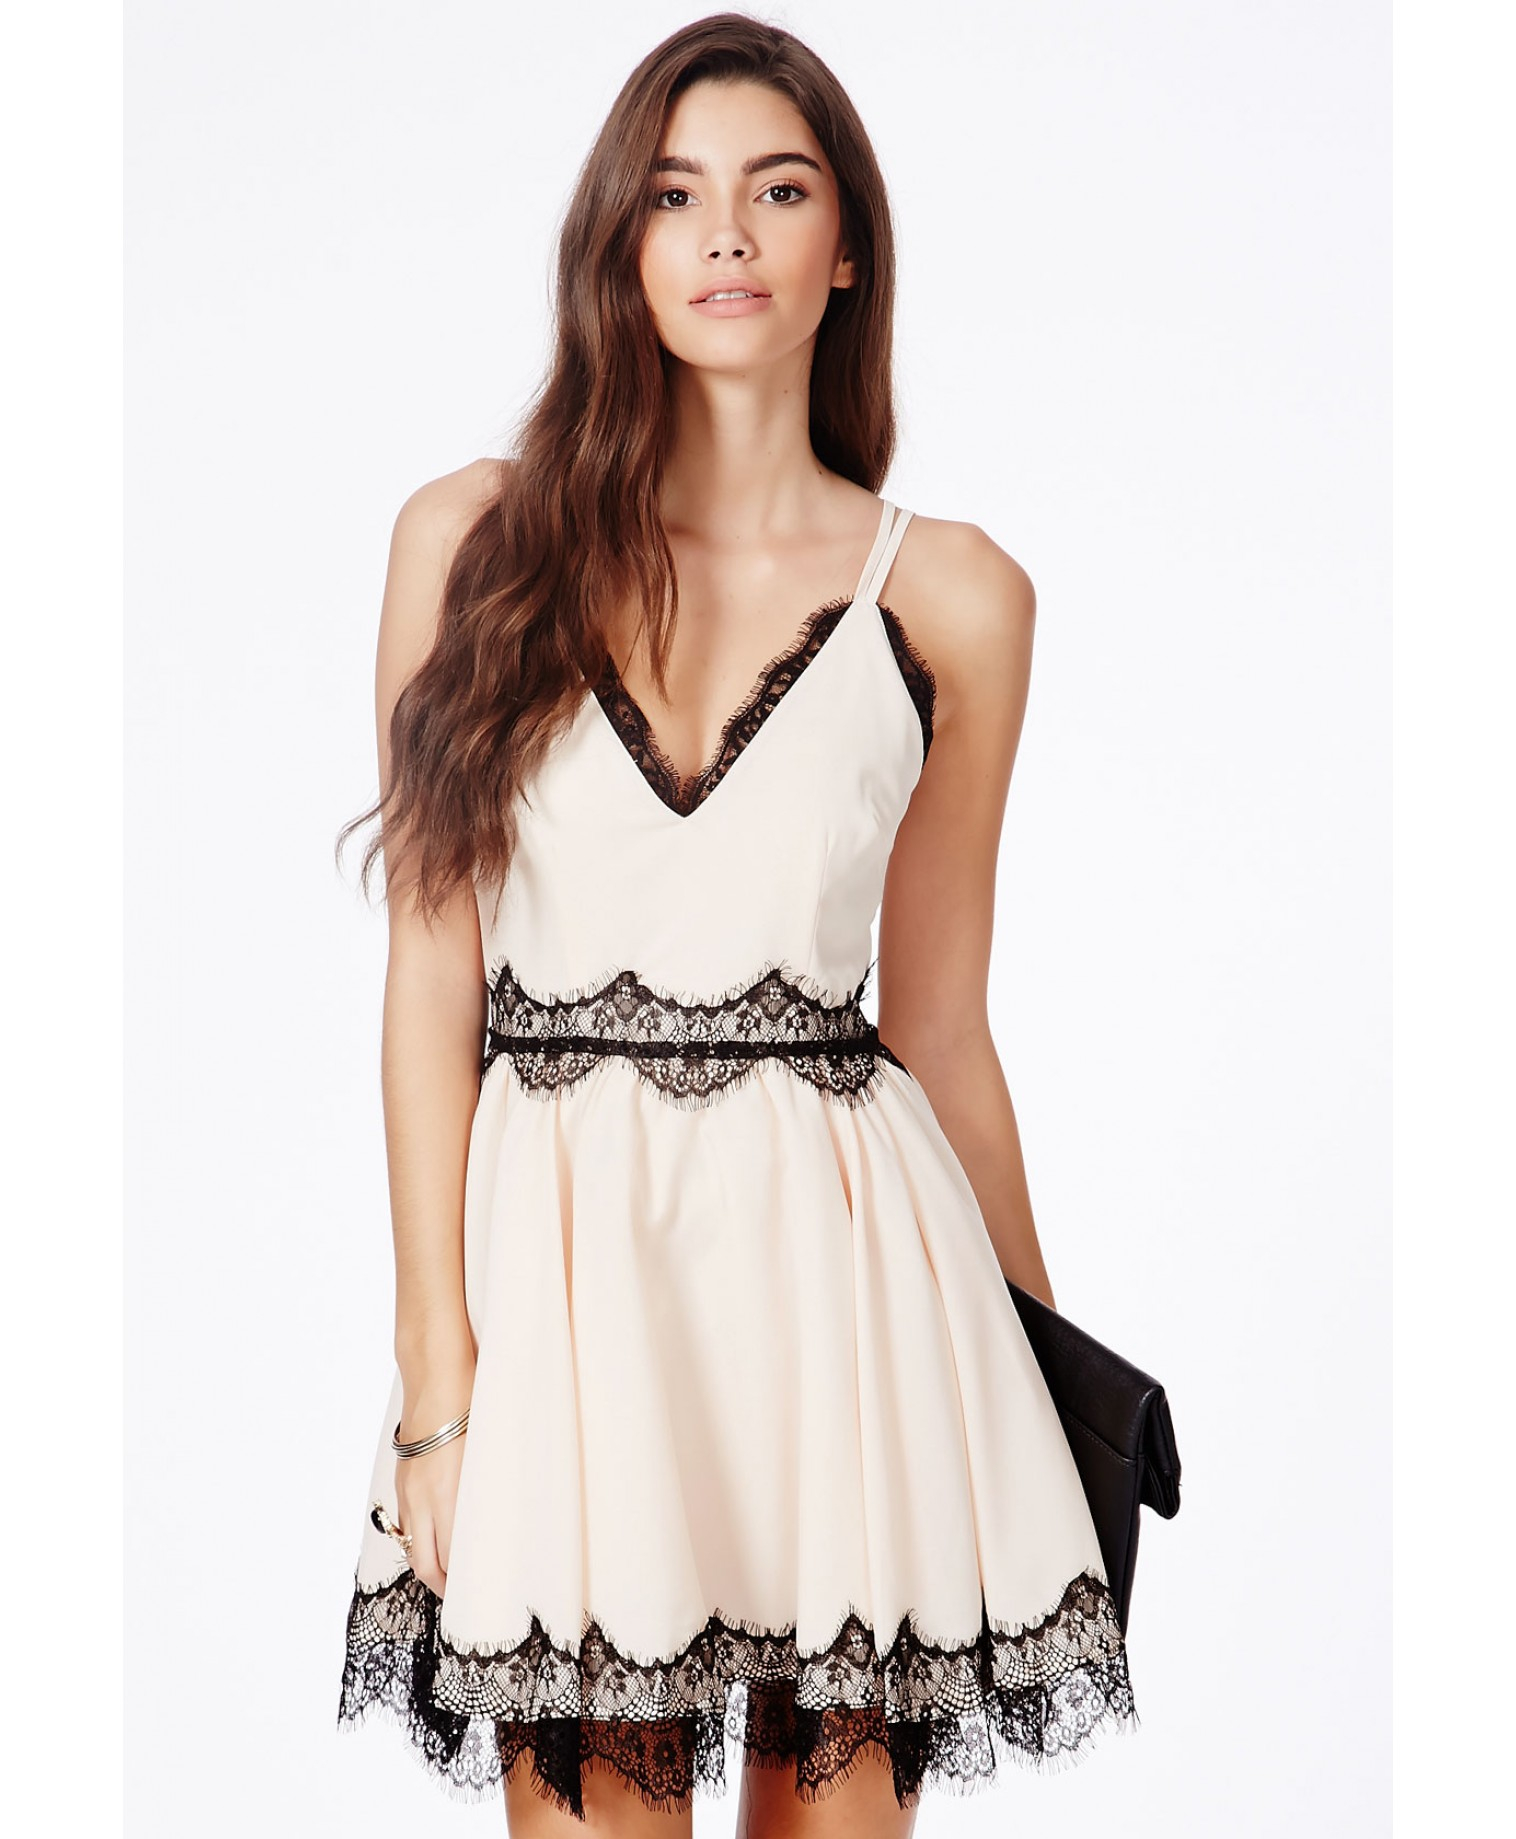 Lyst - Missguided Berneen Nude Puffball Skater Dress With Eyelash ... 33b9106a6